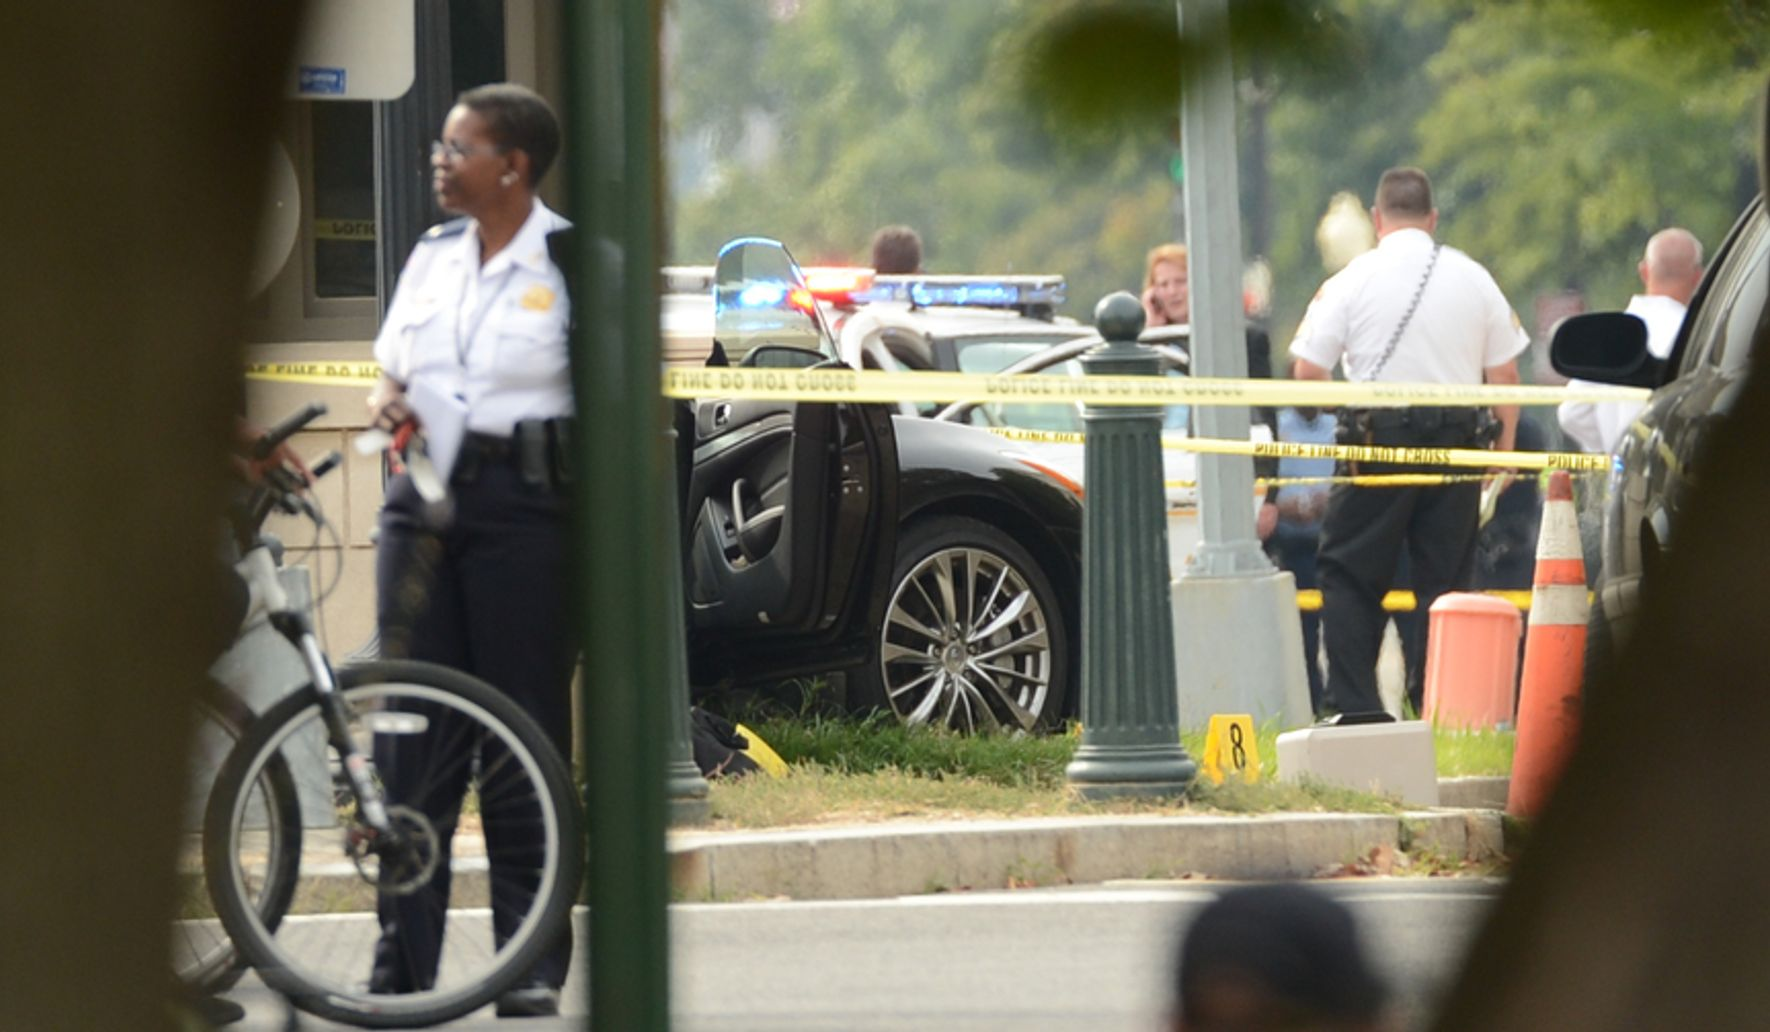 Police chase near White House, Capitol ends with crash